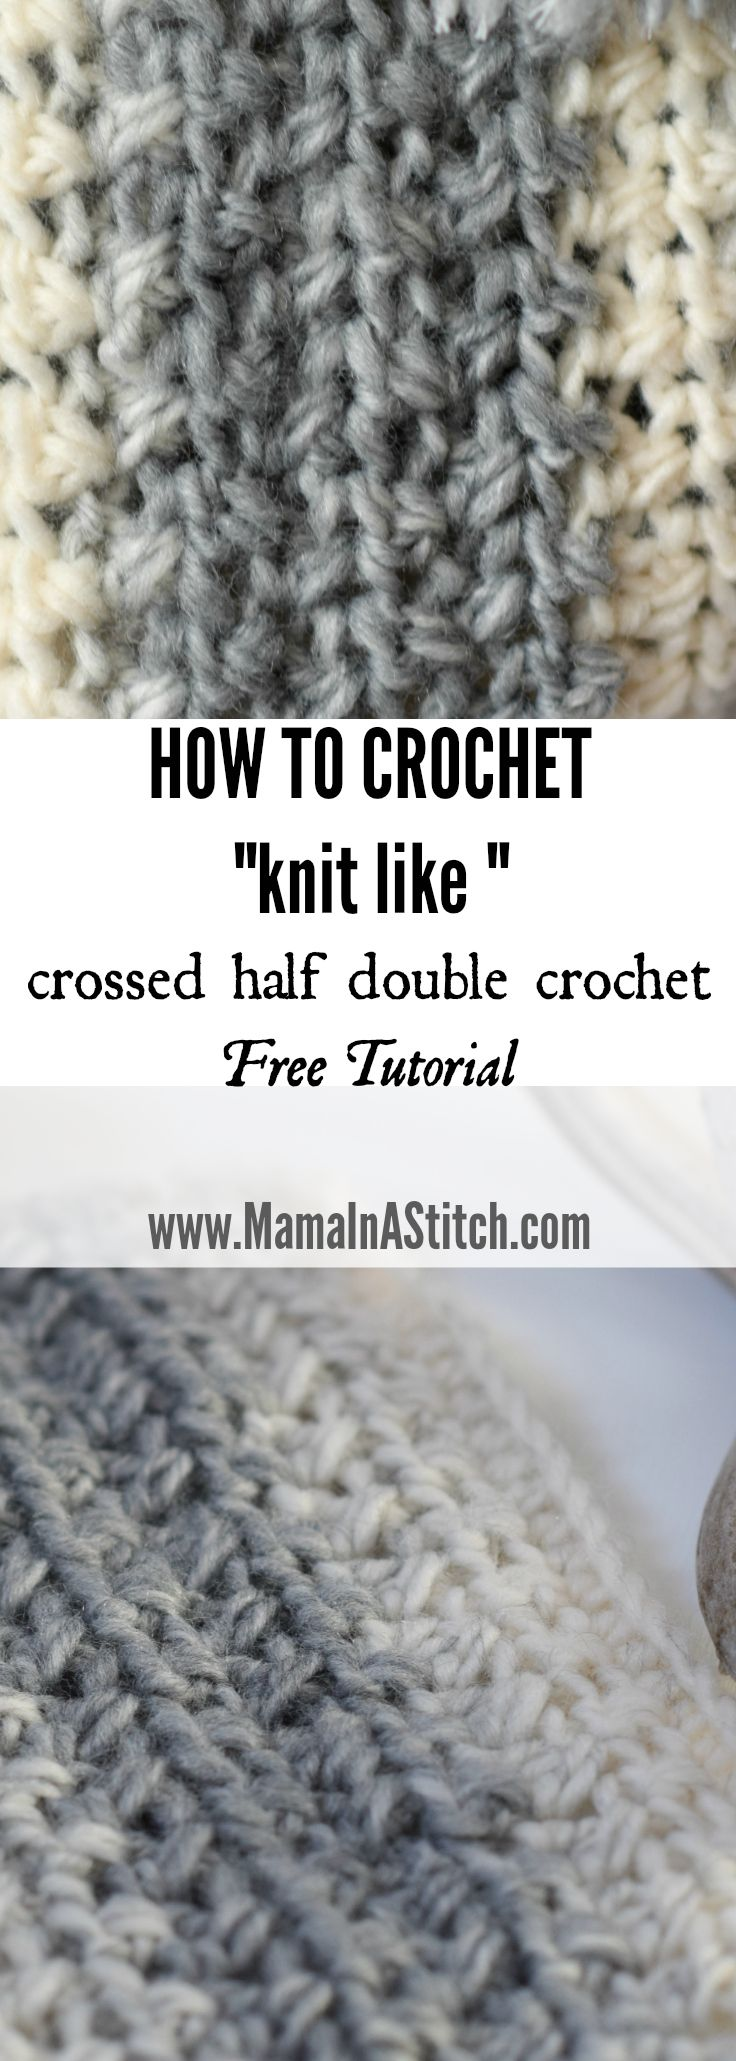 Pretty, Simple Crochet Stitch Tutorial And How To Crossed Half Double Crochet  Stitch Tutorial